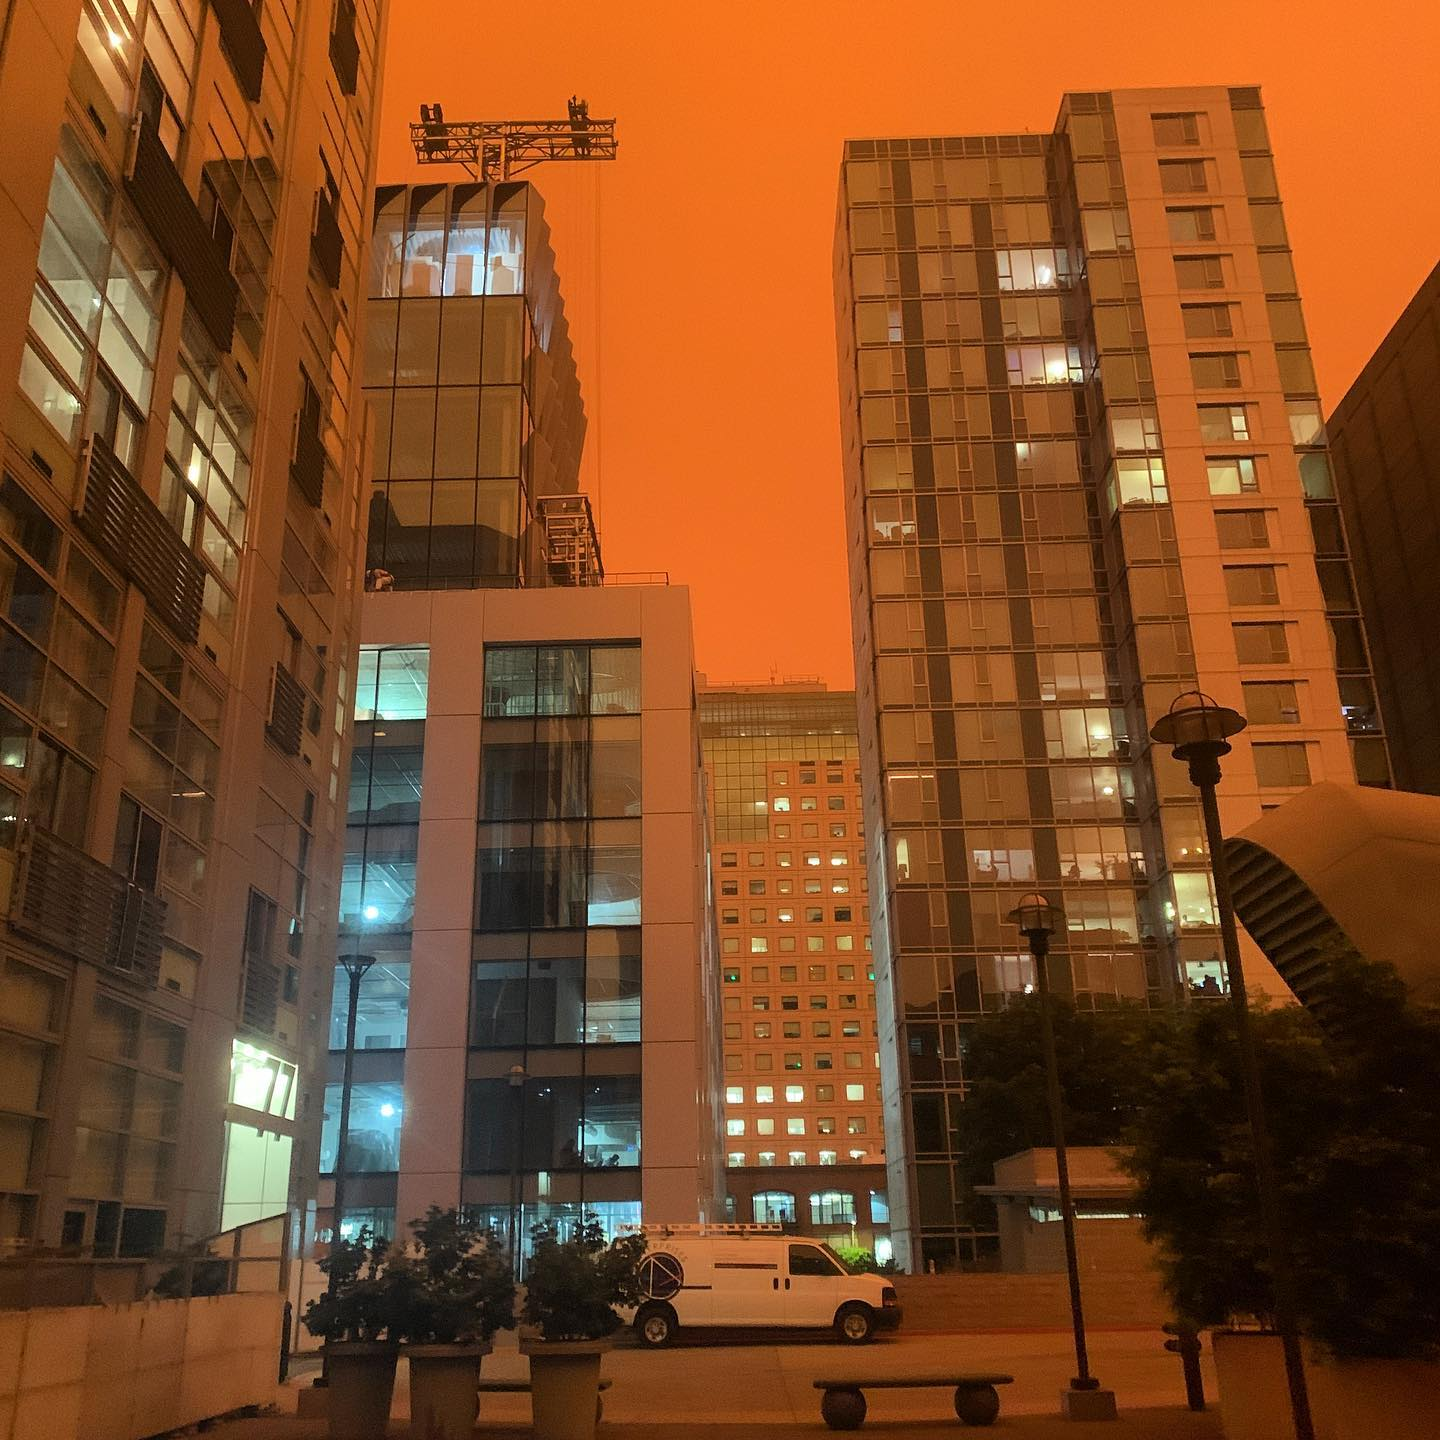 This is outside our building this morning as wildfire smoke in the atmosphere hovered over SF today blocking sunlight and turning the sky a dark, orange haze. It was like night during the day. Hoping the wind shifts and the smoke or ash doesn't start to drift down. Air last week was pretty bad already. At least there's no power outage at the same time.